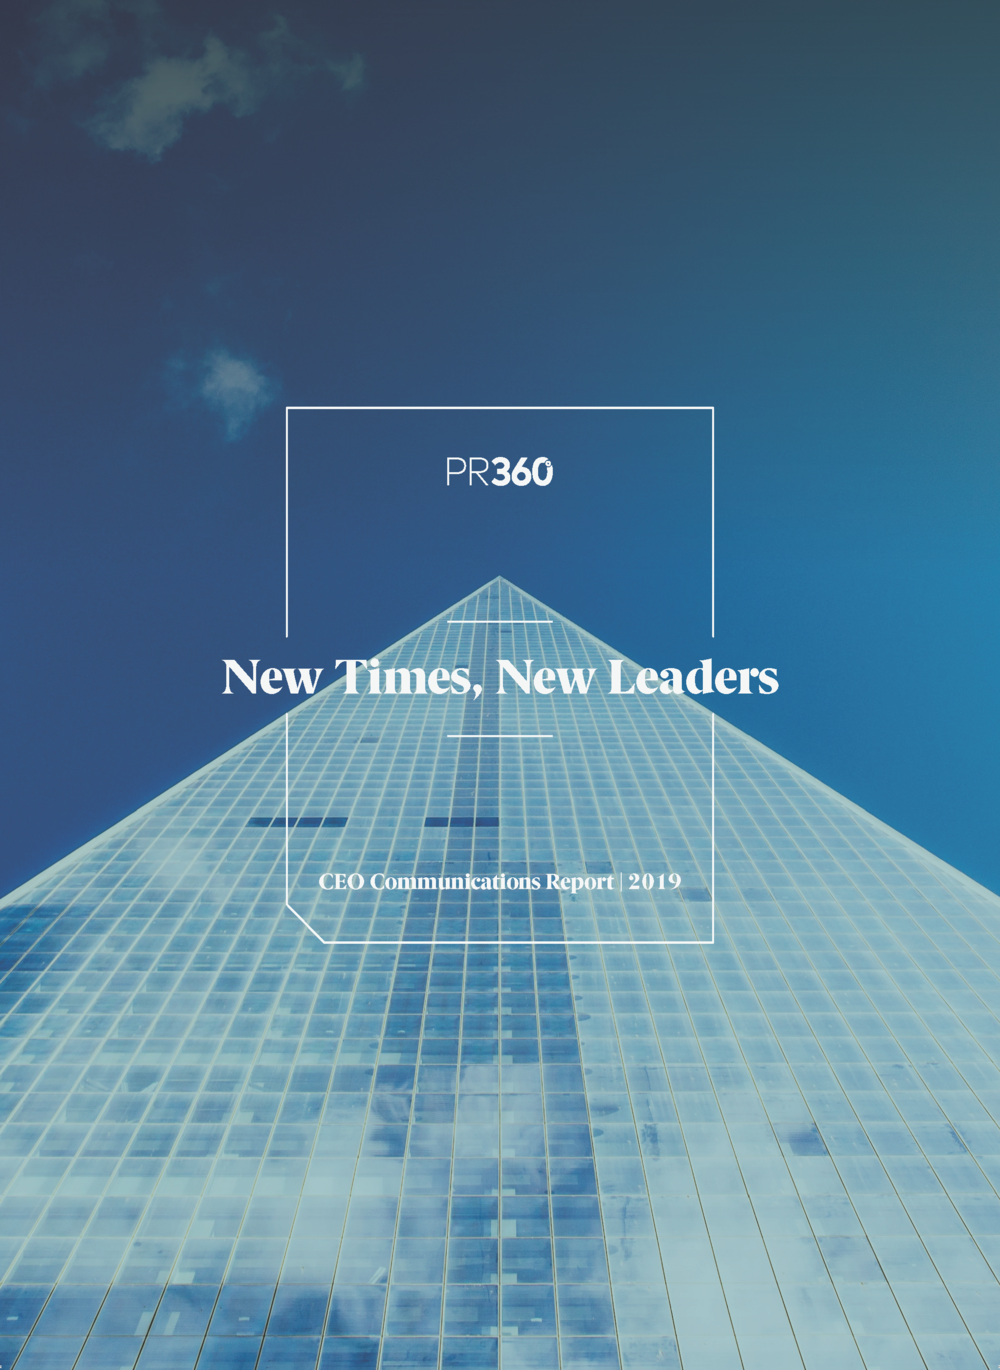 New Times, New Leaders